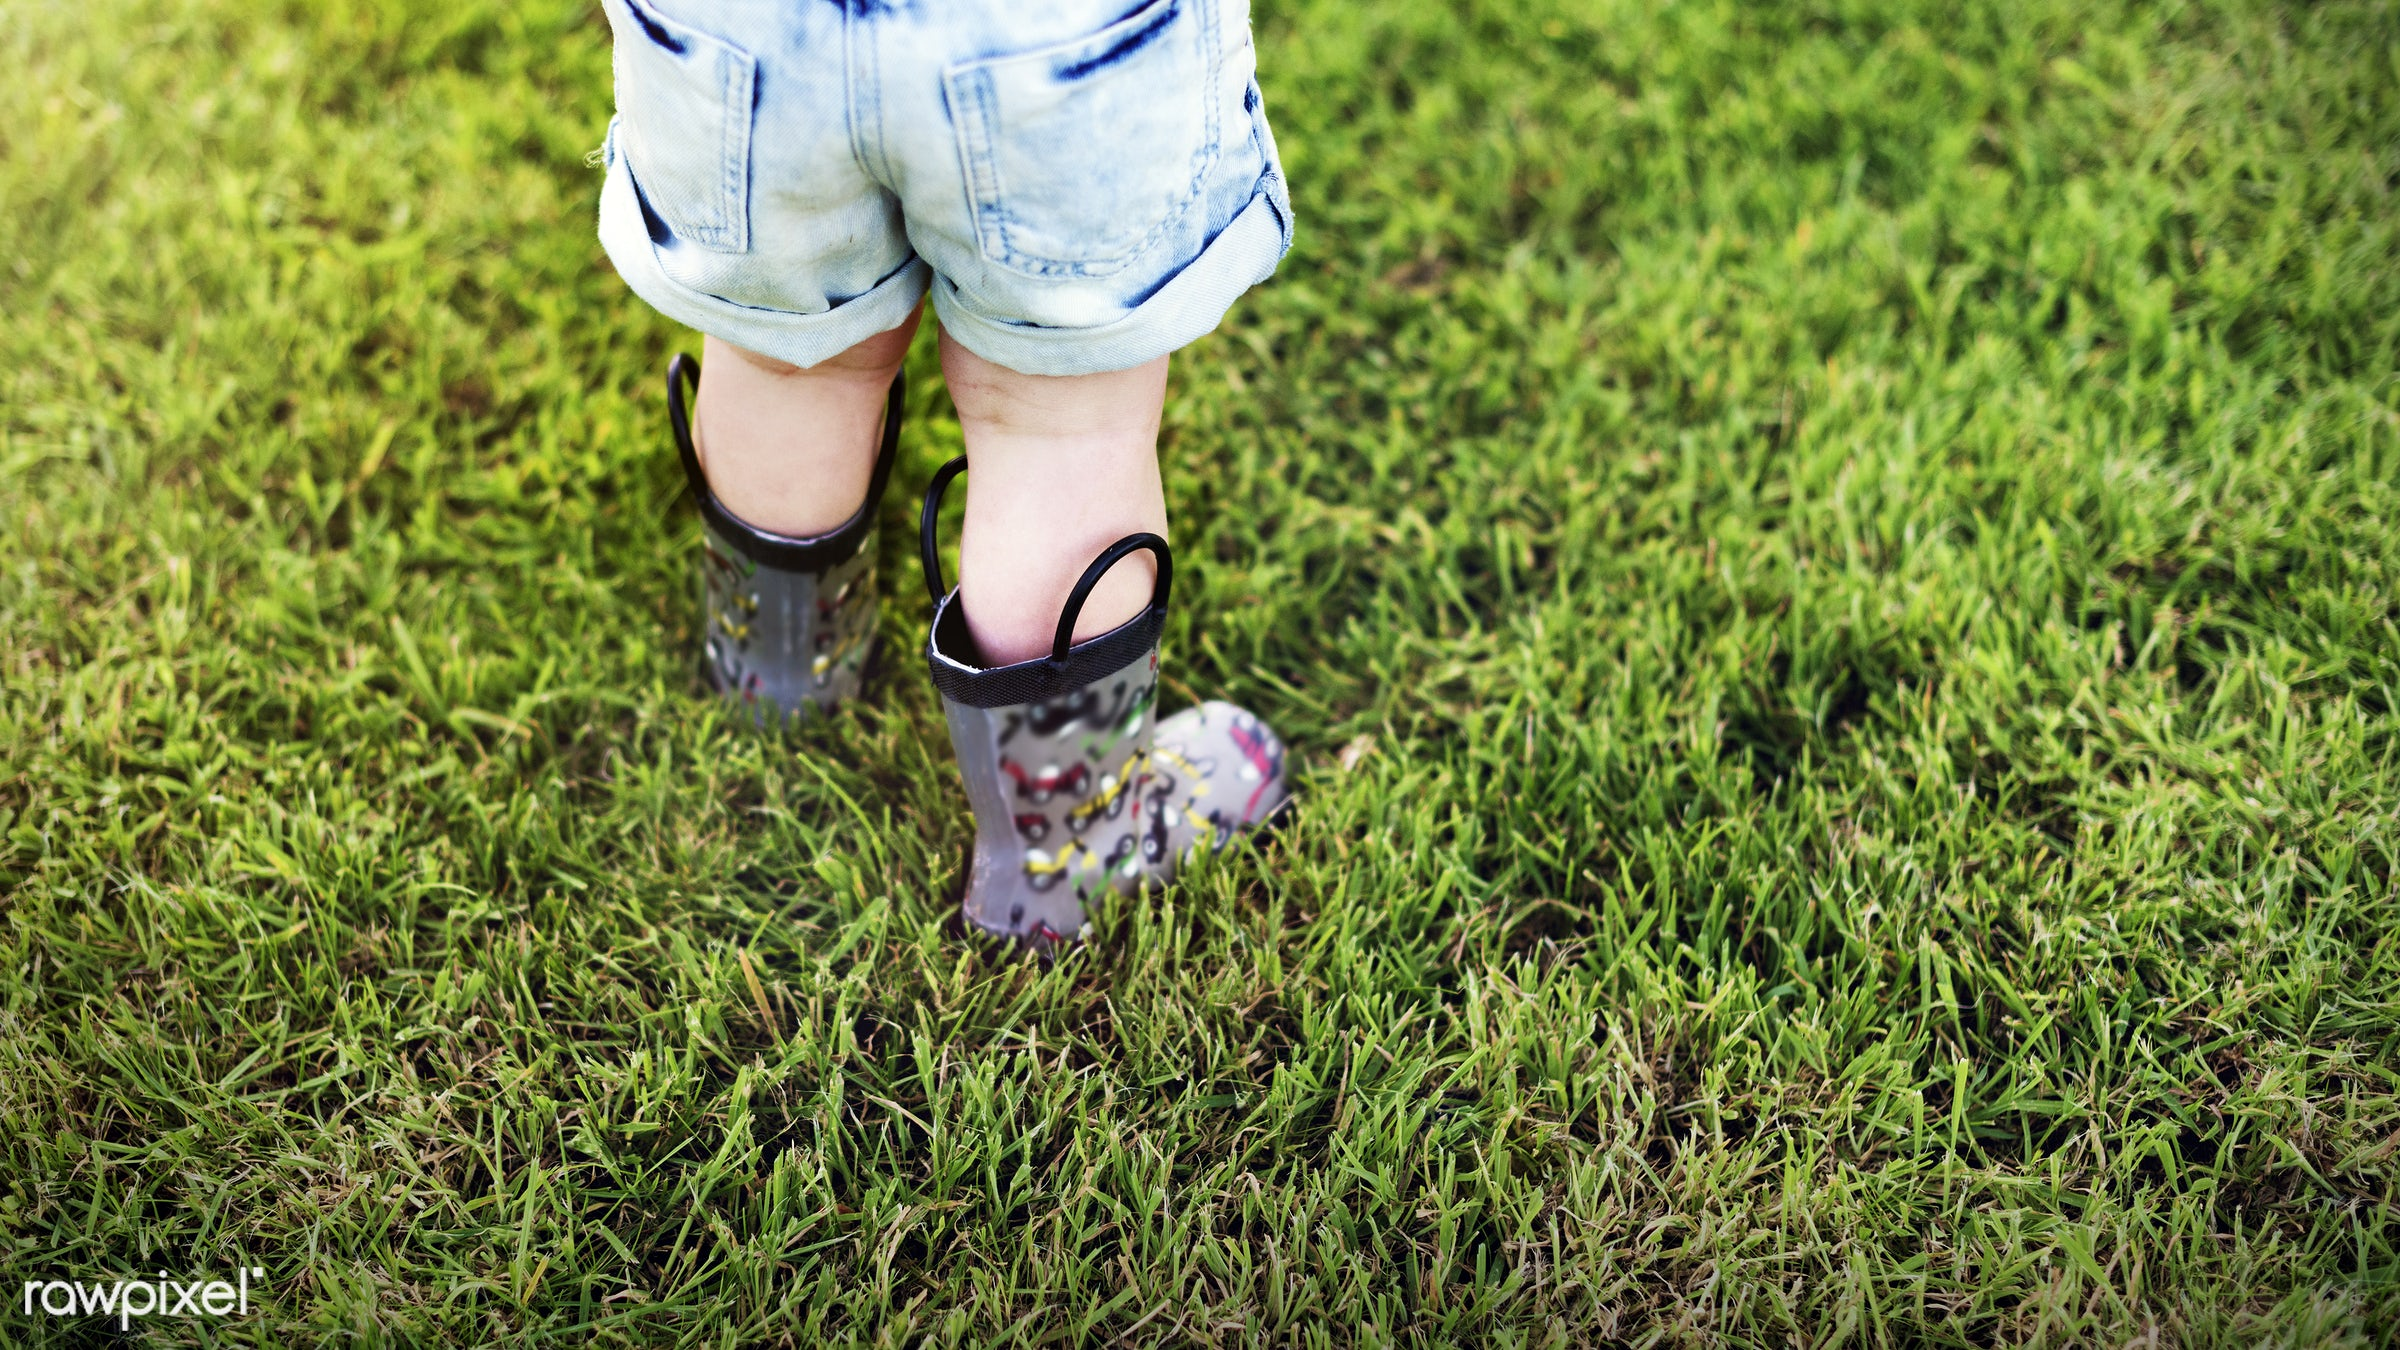 lawn, arboretum, backyard, bloom, blooming, botanical, botany, boy, child, country, countryside, cultivate, cultivating,...